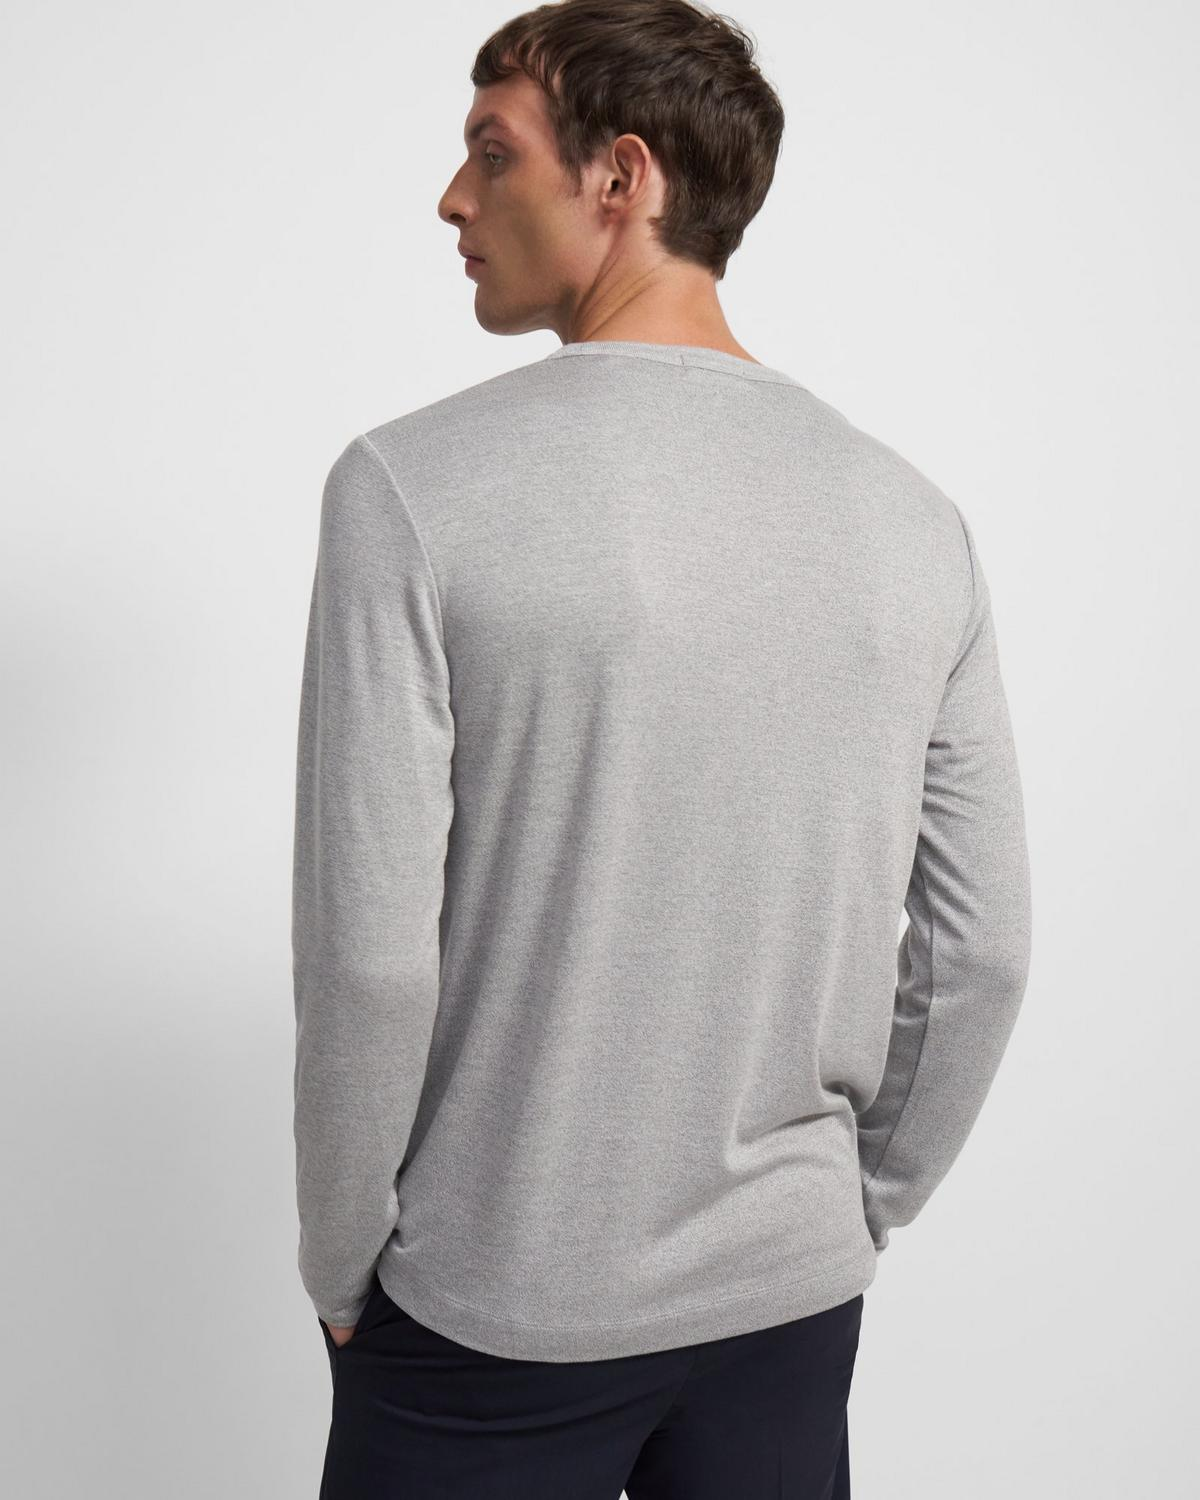 Long-Sleeve Tee in Modal Jersey